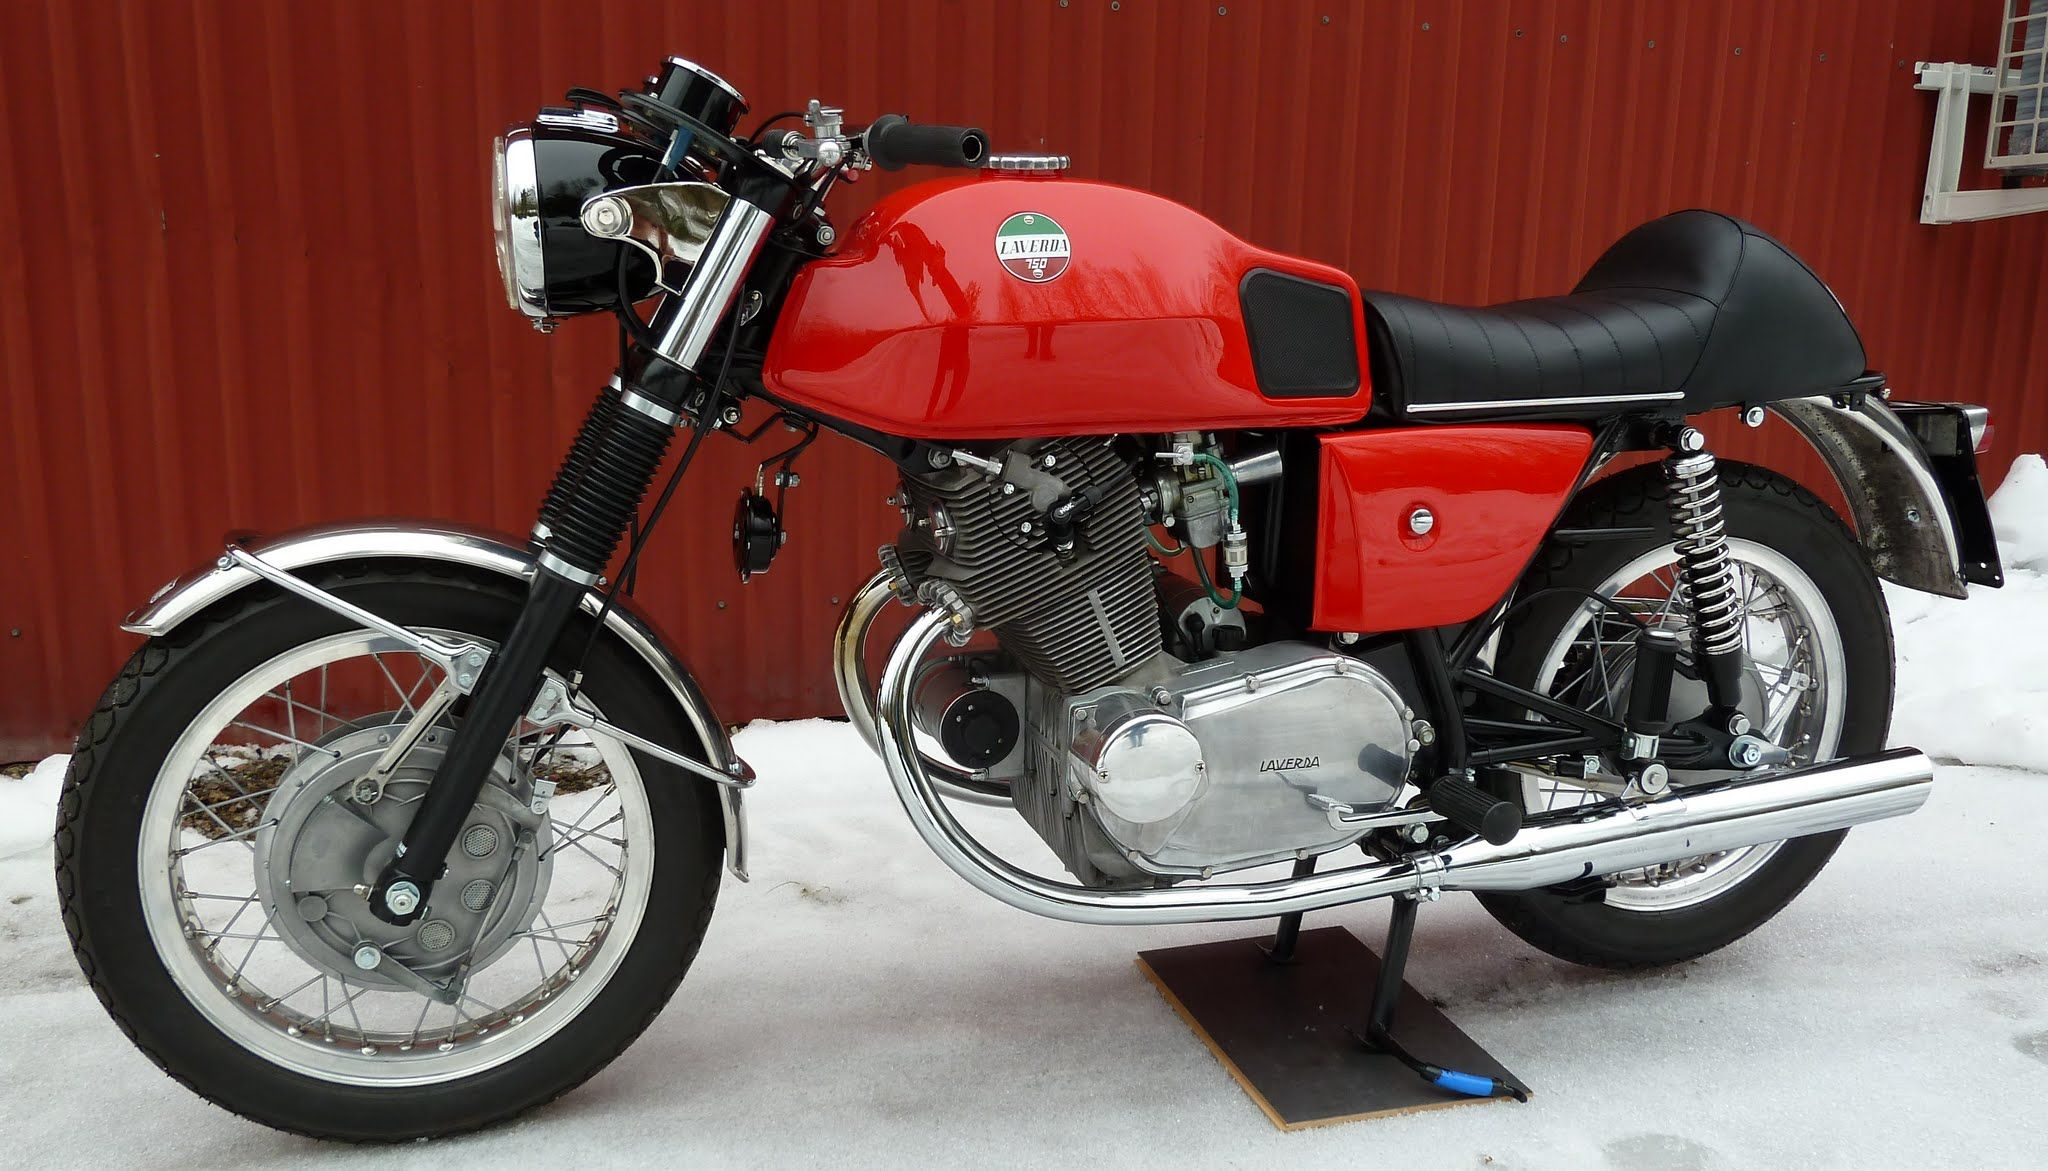 Pin by Hannu Tontti on Laverda750S Classic motorcycles